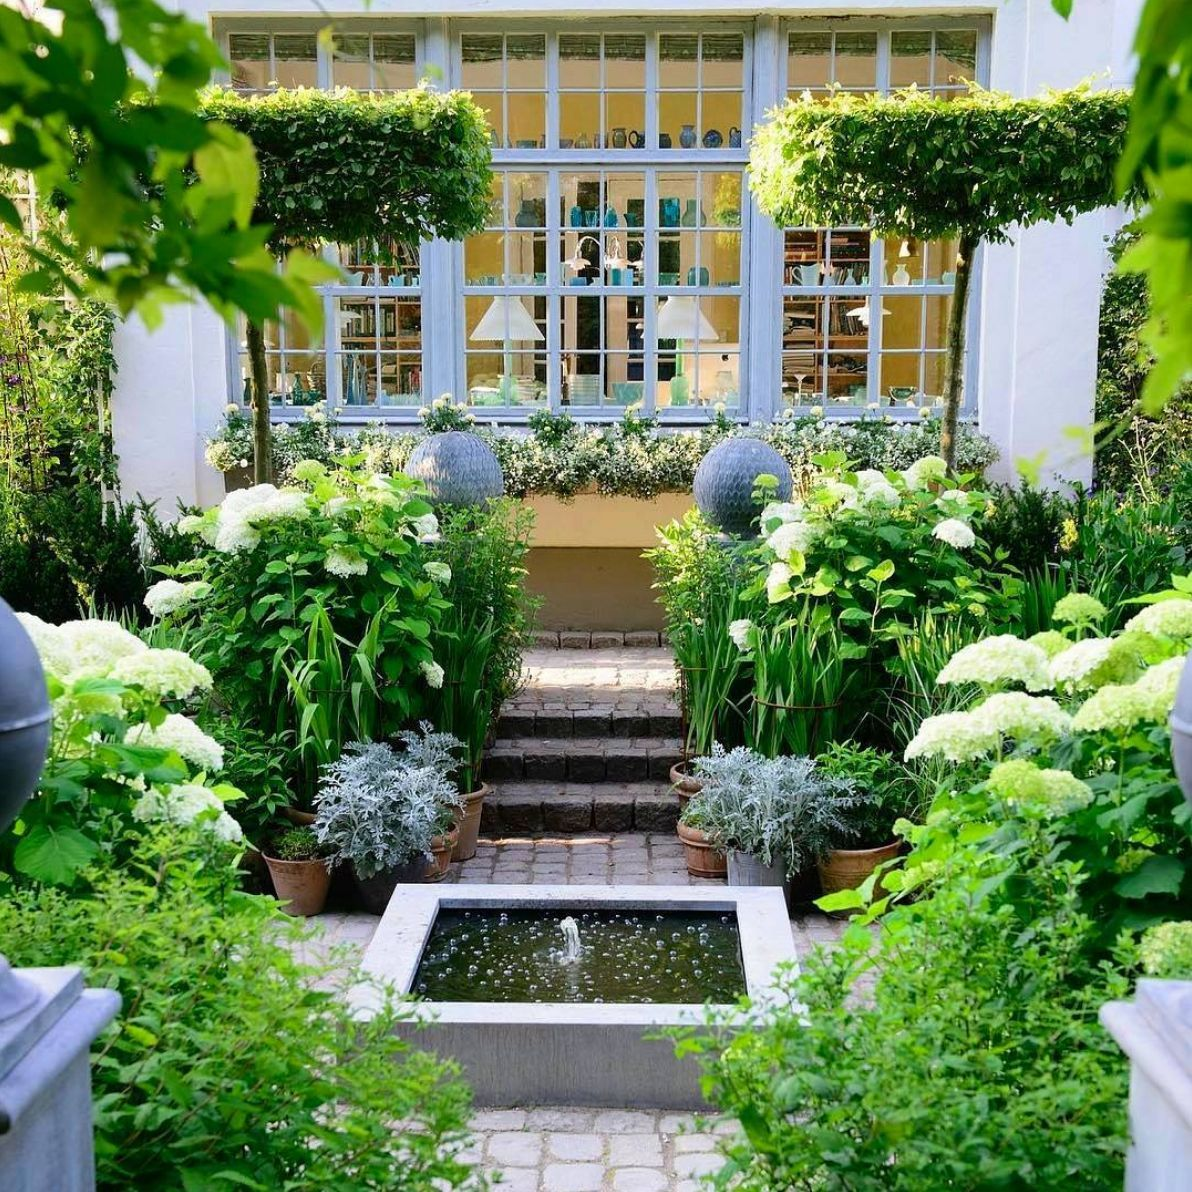 These are the top garden trends of 2019 according to Google searches